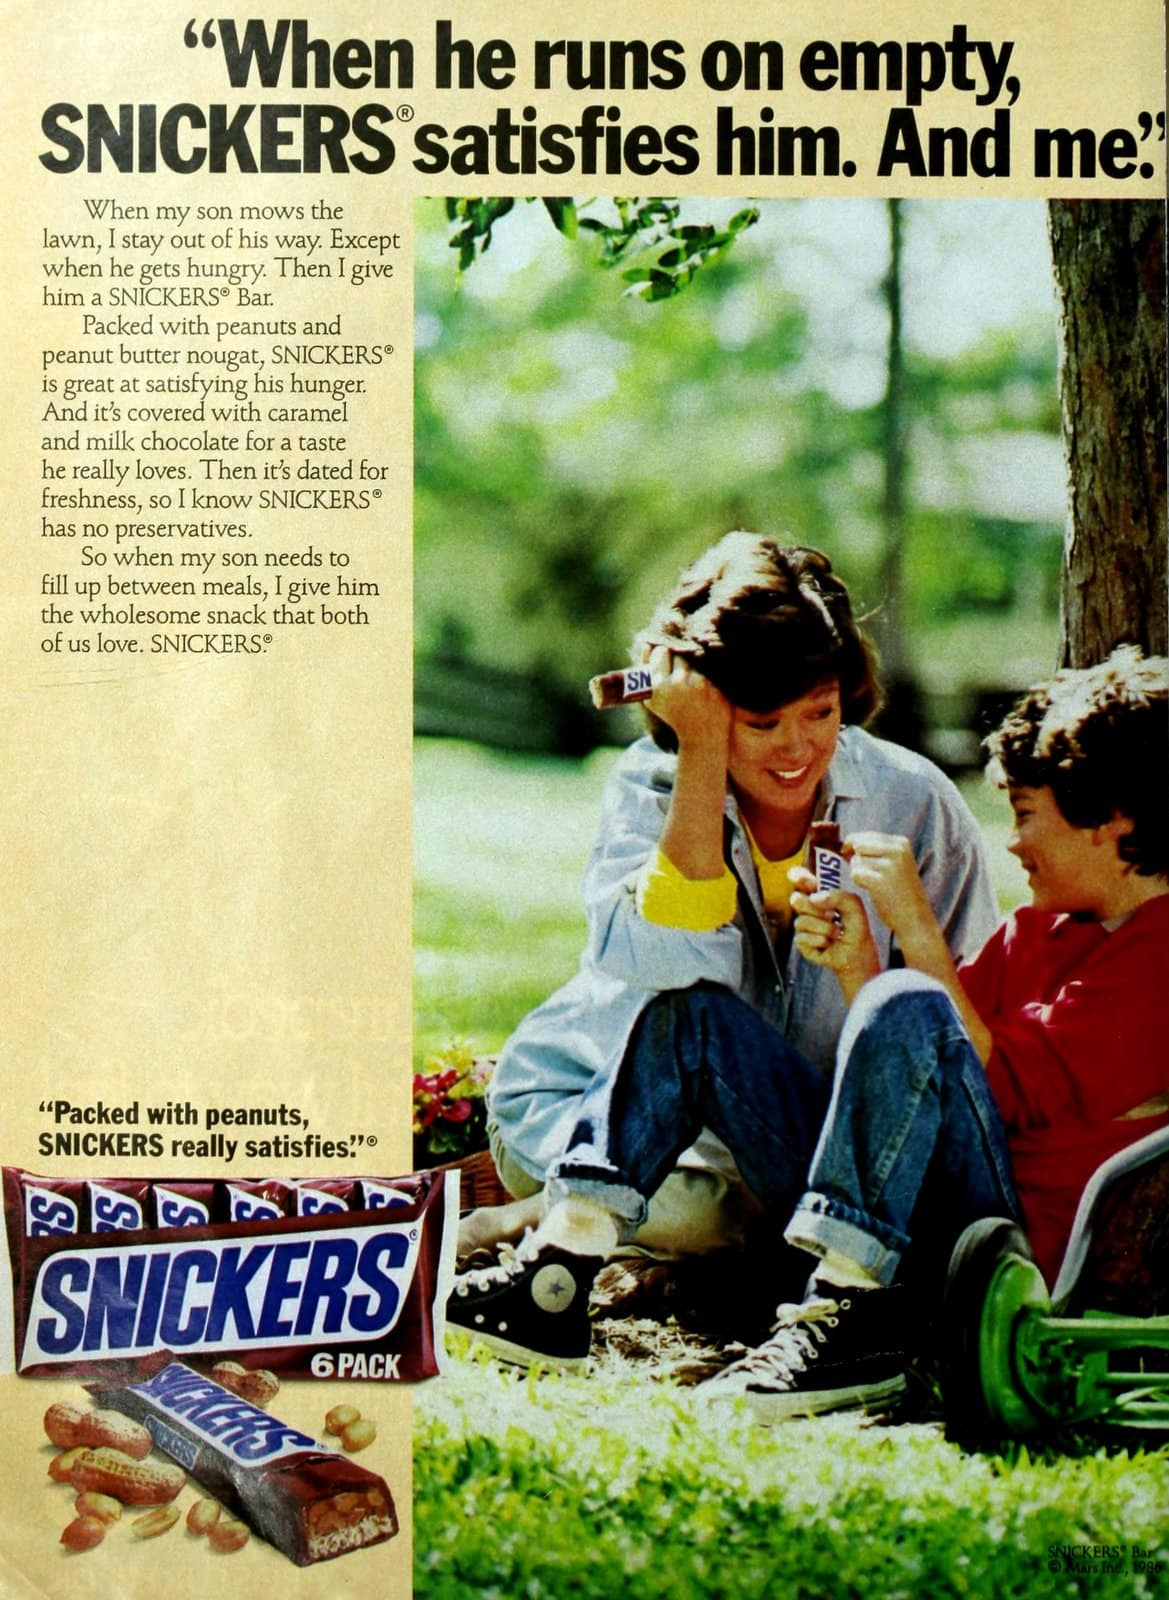 Vintage Snickers candy bars (1986)